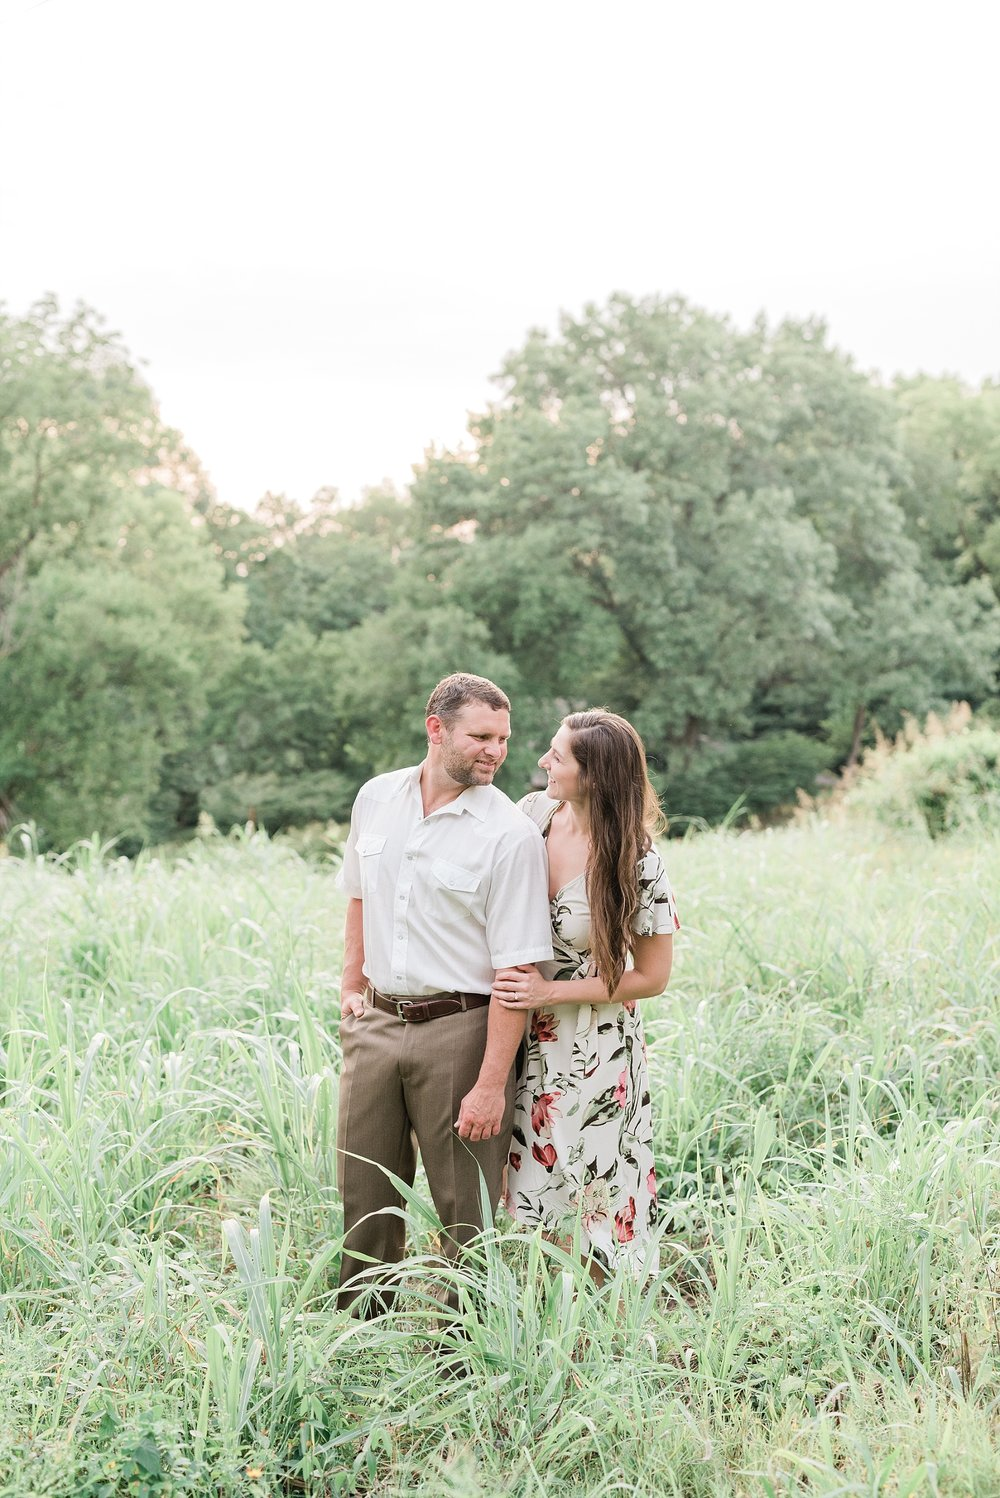 Sunset Engagement Session at Faust Park Chesterfield Missouri by Kelsi Kliethermes Photography_0022.jpg